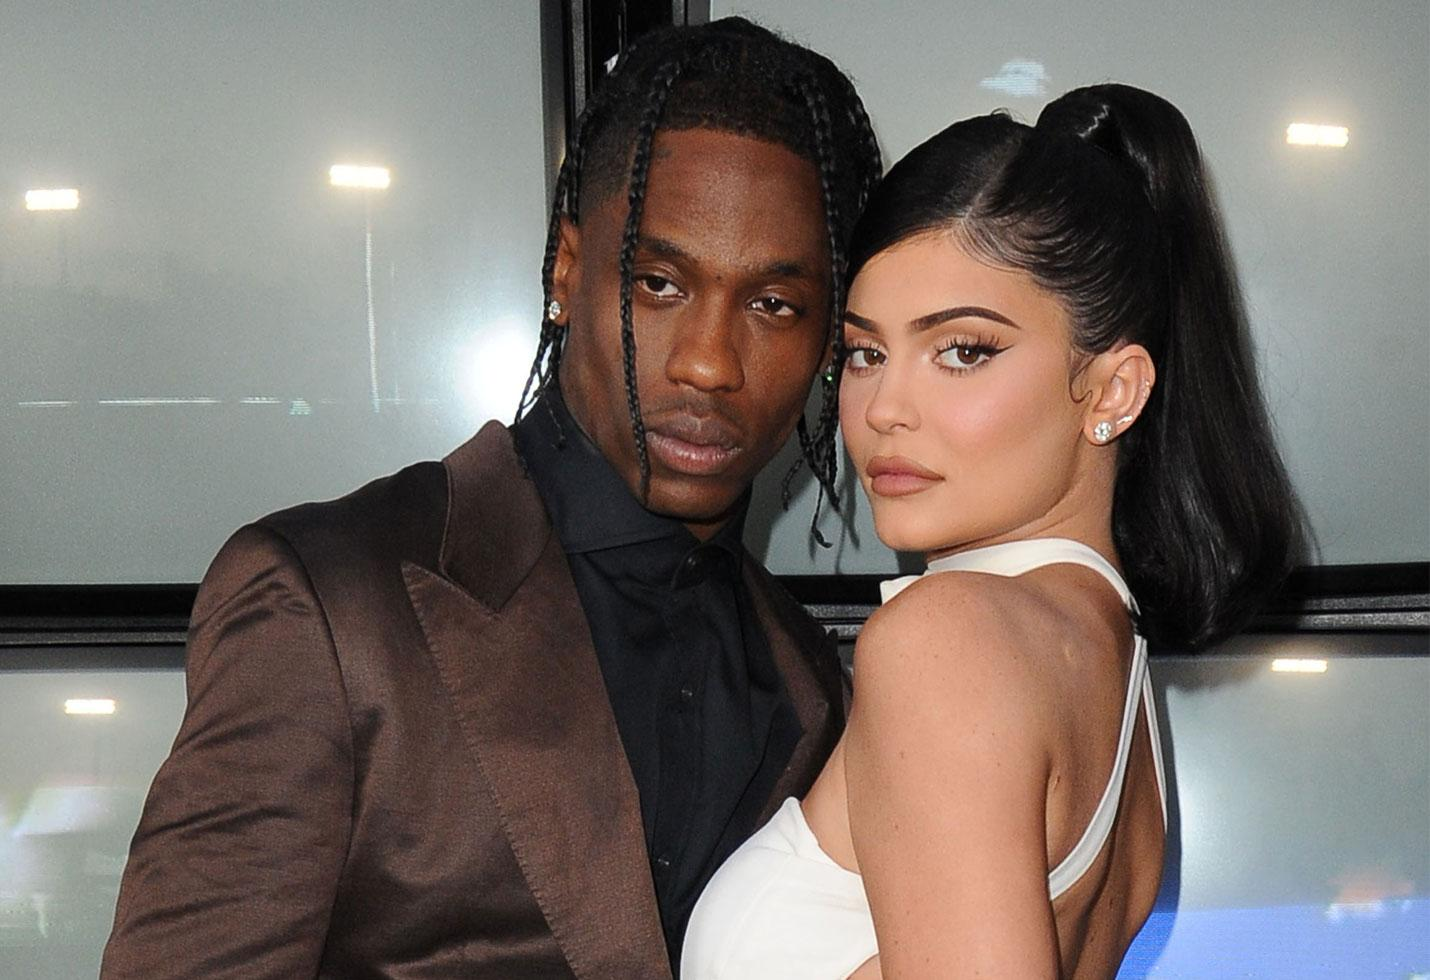 KUWK: Kylie Jenner And Travis Scott's Reunion Is 'Inevitable' And They Know It, Source Says!